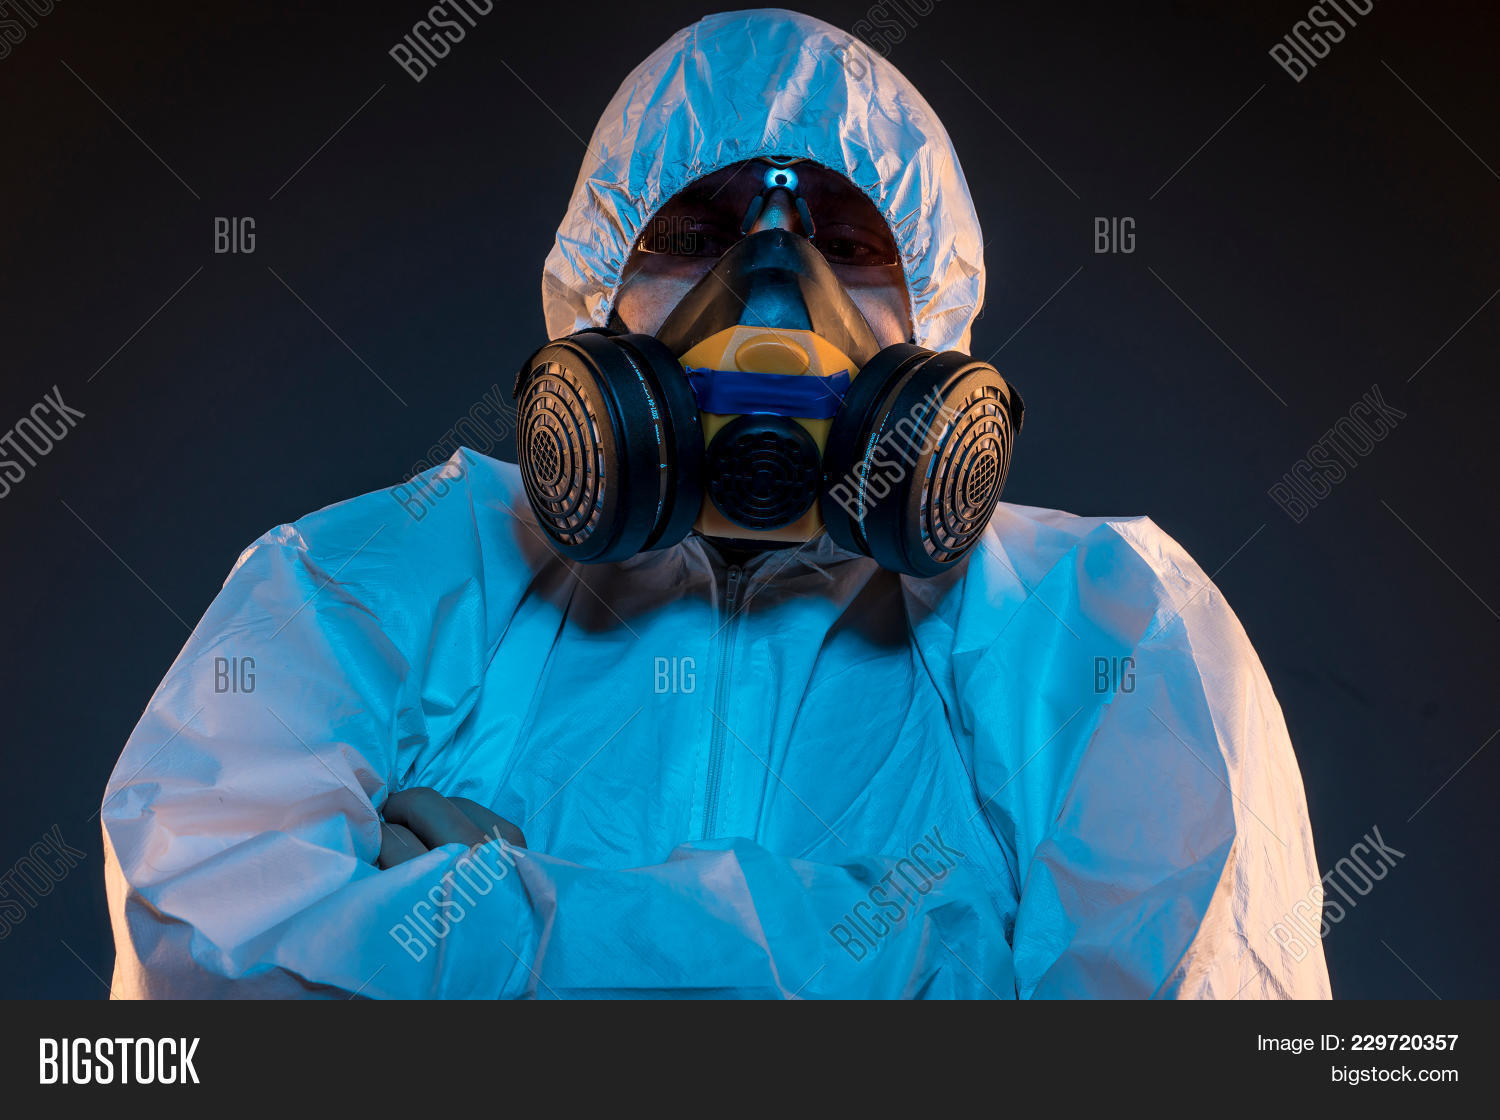 free Photo Image amp; Bigstock Quarantine Trial Virus